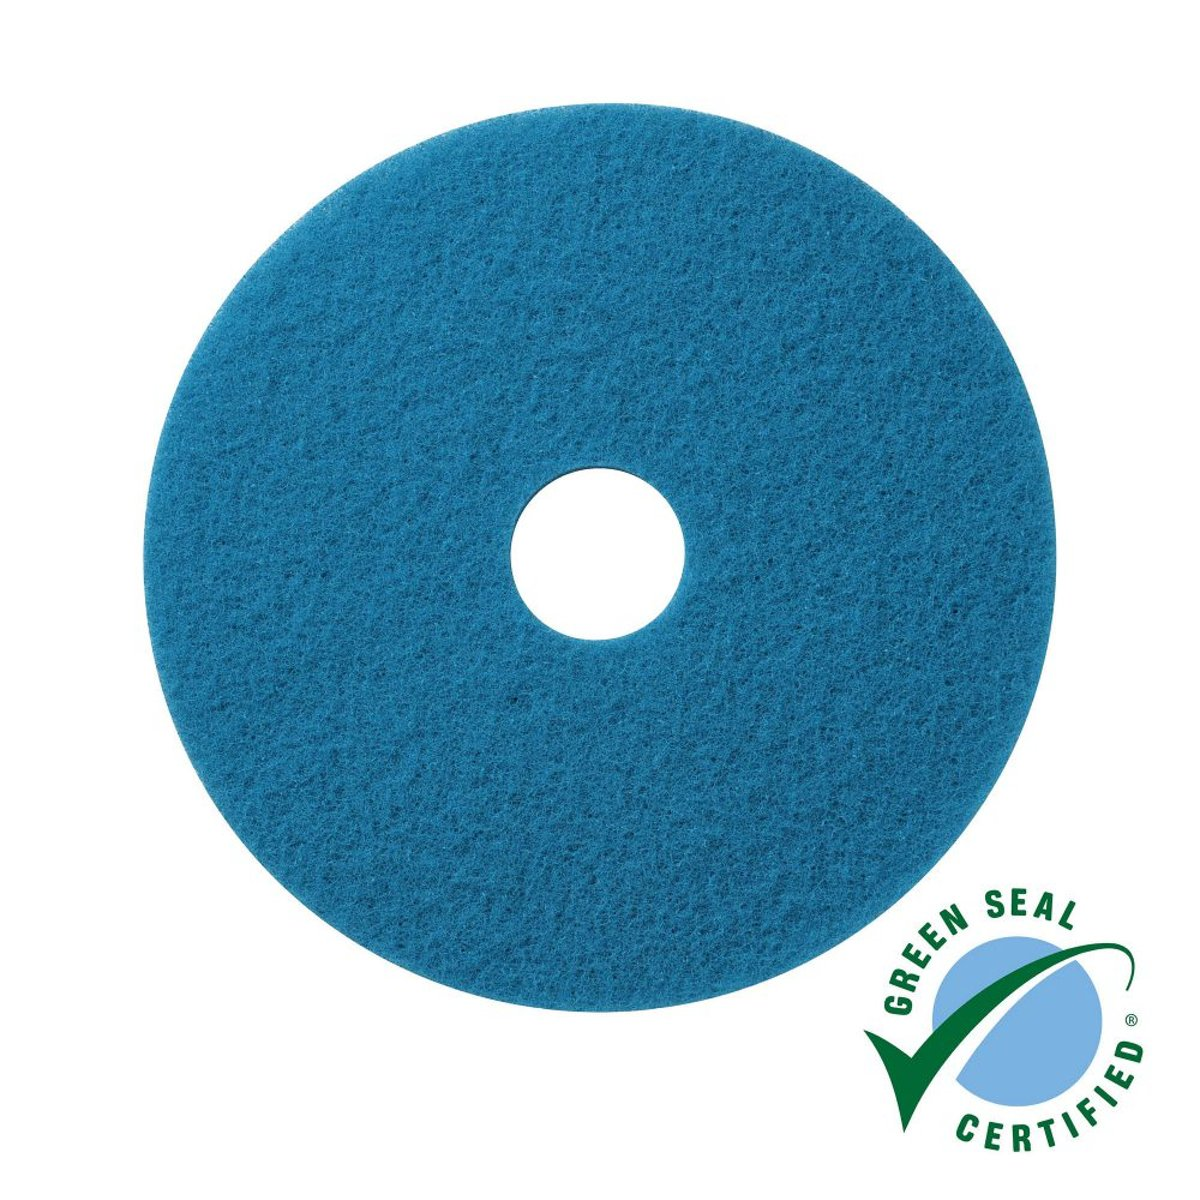 Wecoline Schrob pad blue cleaner Full Cycle? 17 - 20001117